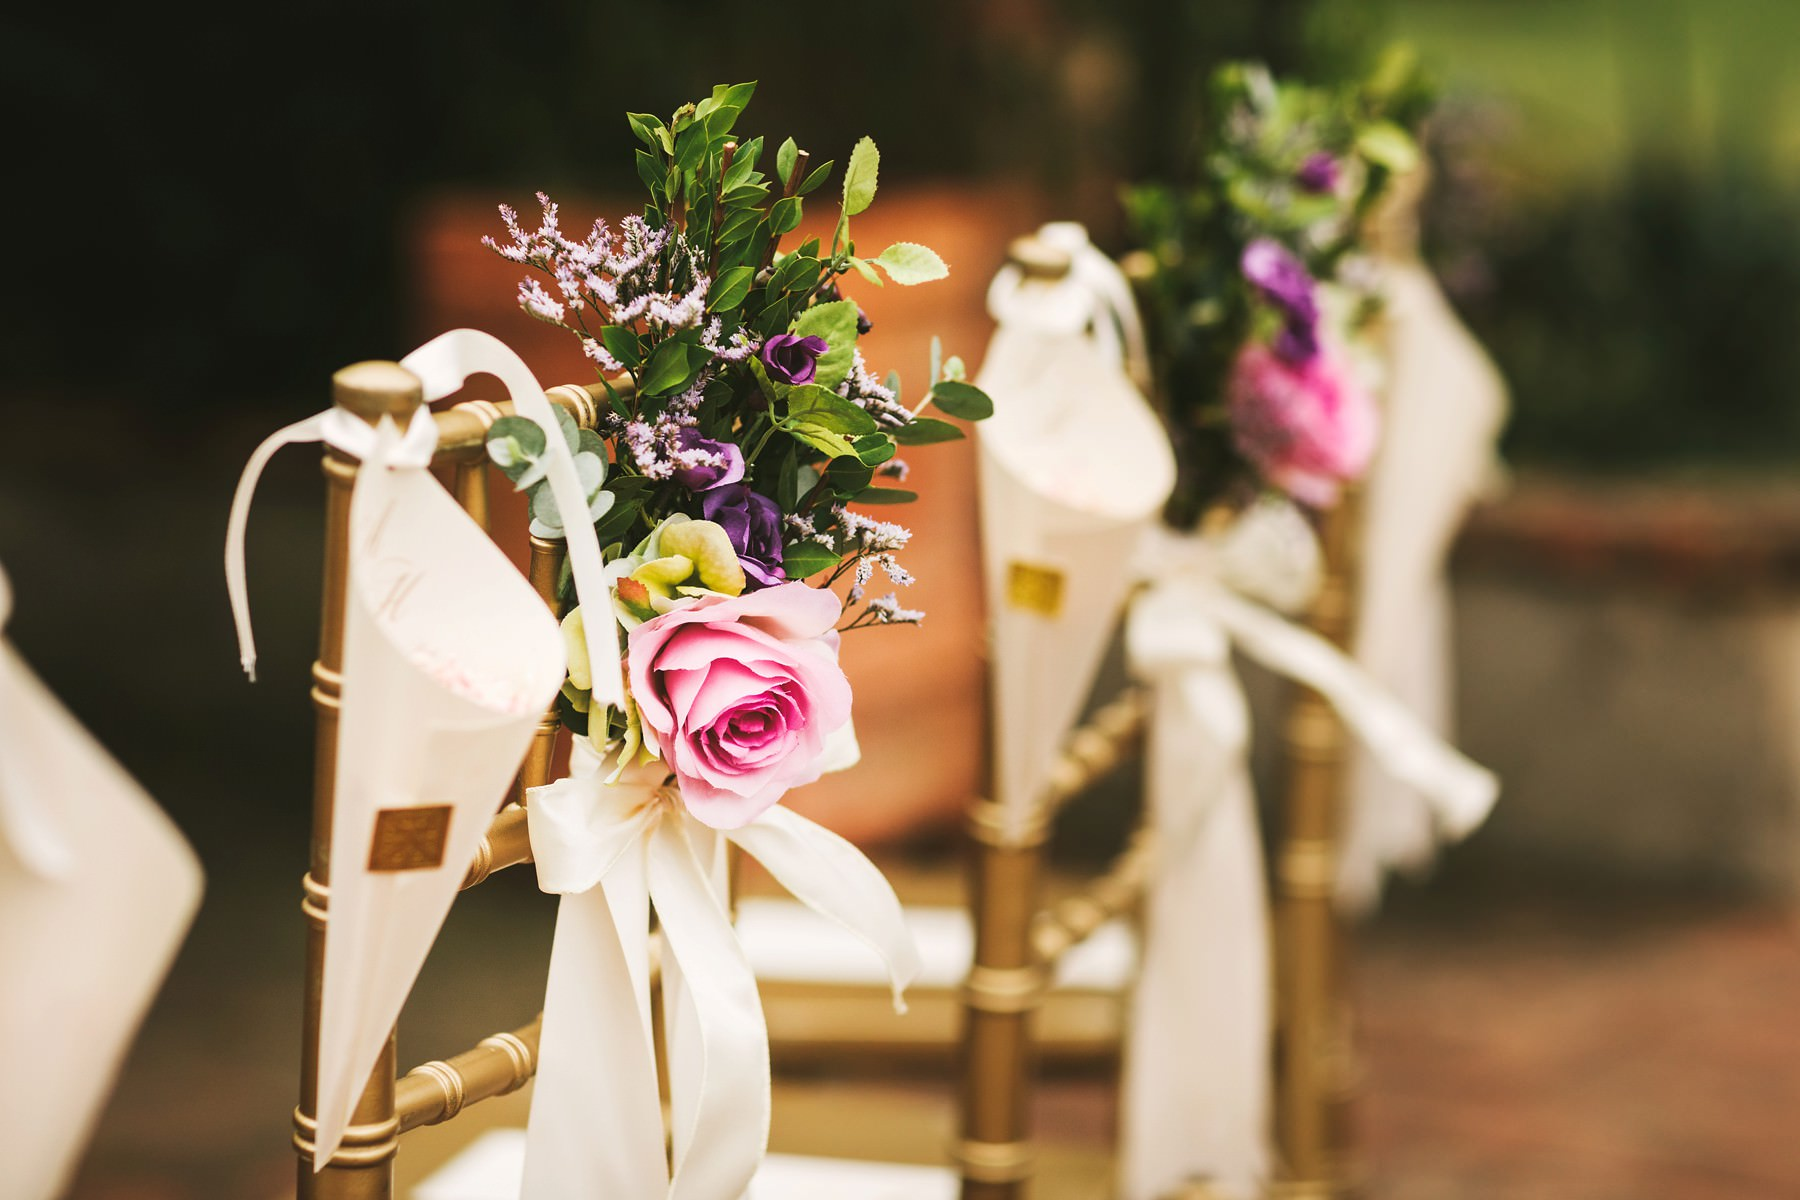 Elegant and beautiful wedding ceremony decor in Tuscany farmhouse La Fornace